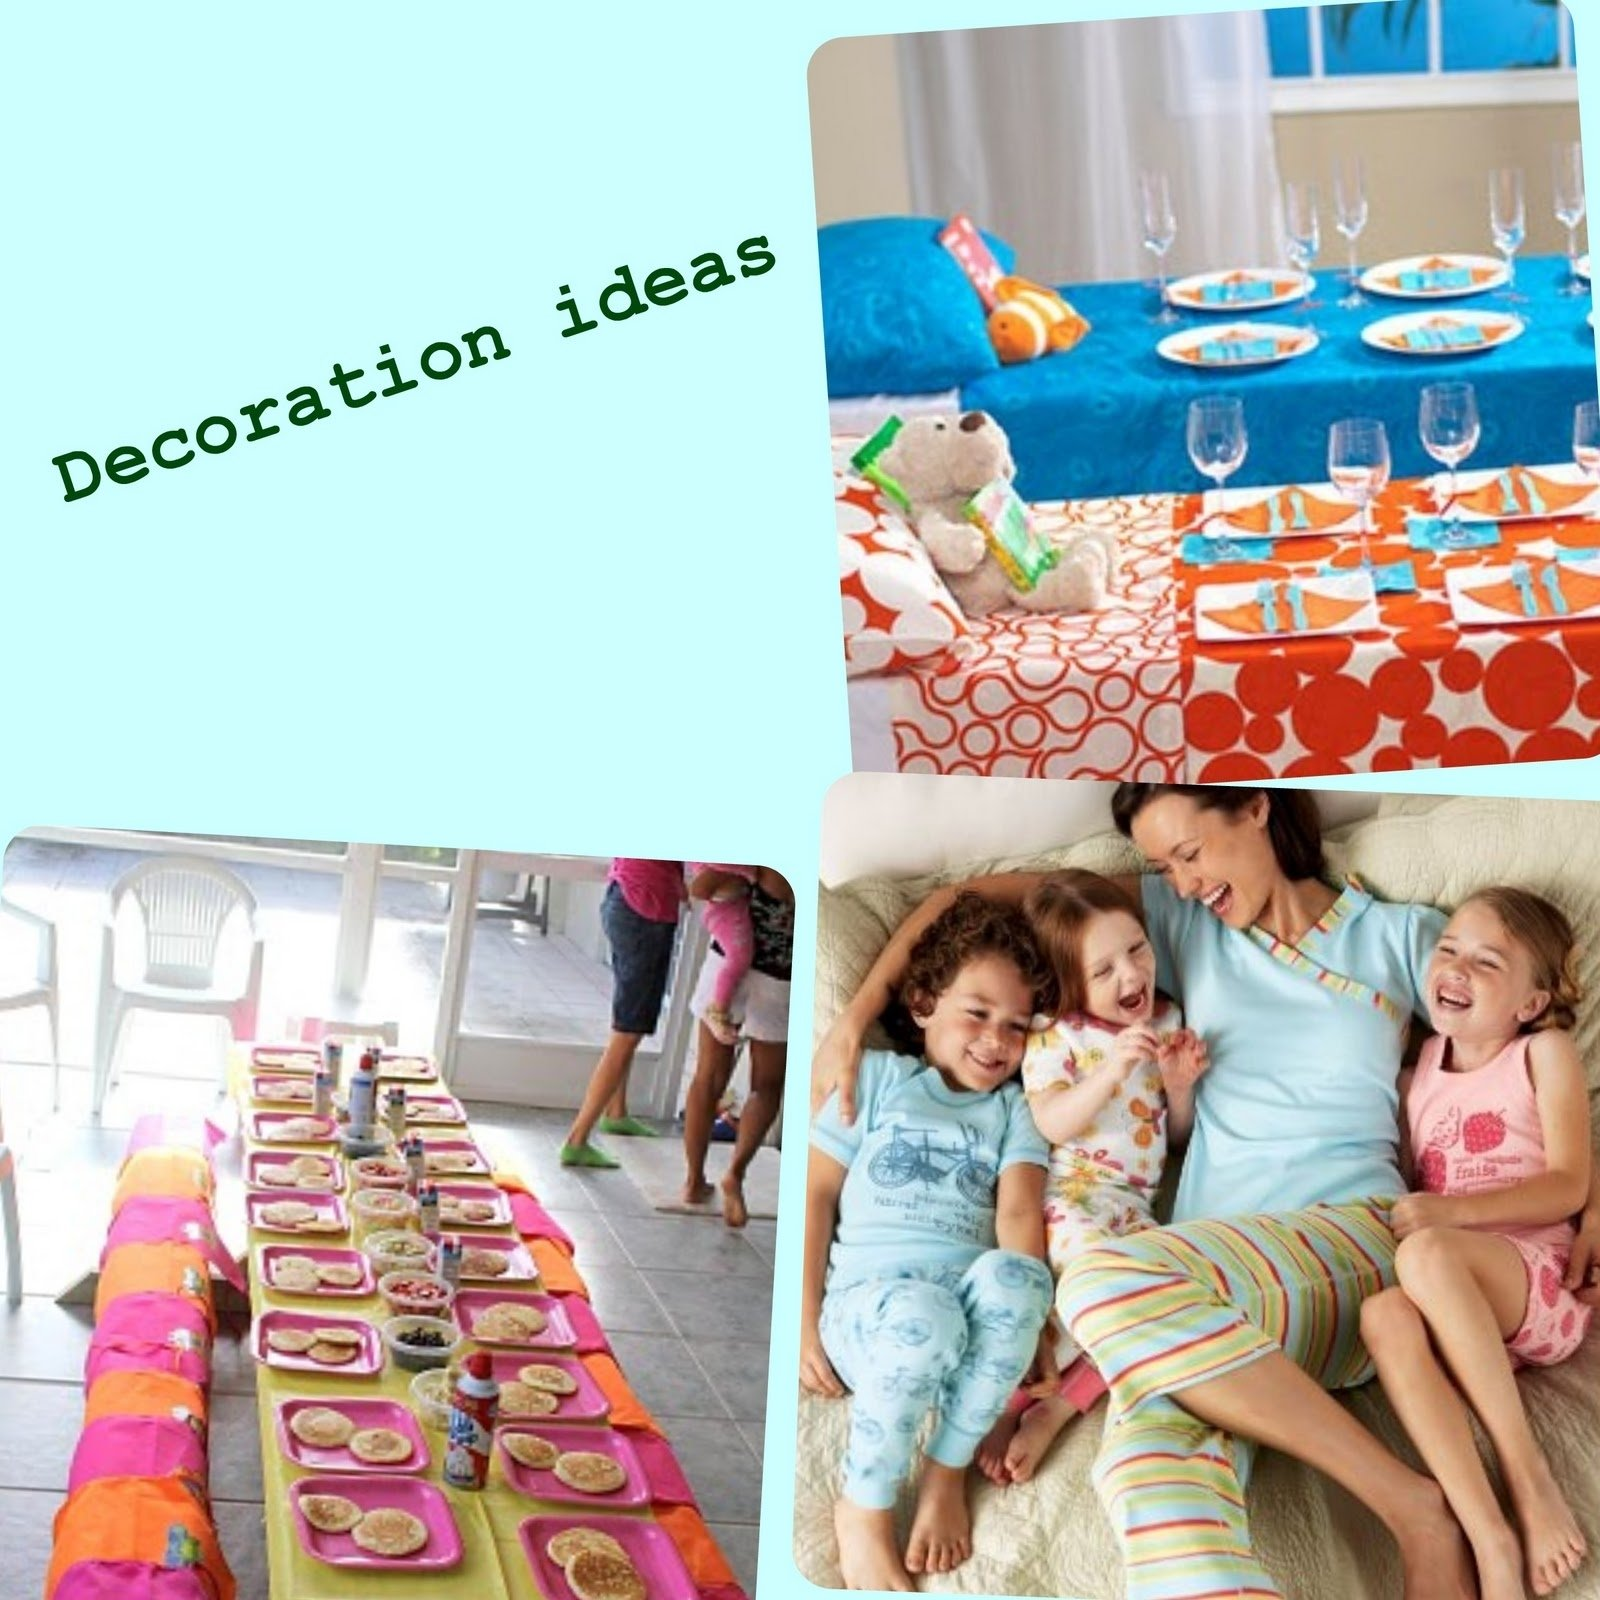 10 Amazing Pajama Party Ideas For Kids a chi chi affair a pancake and pyjama party crafts for kids 2020